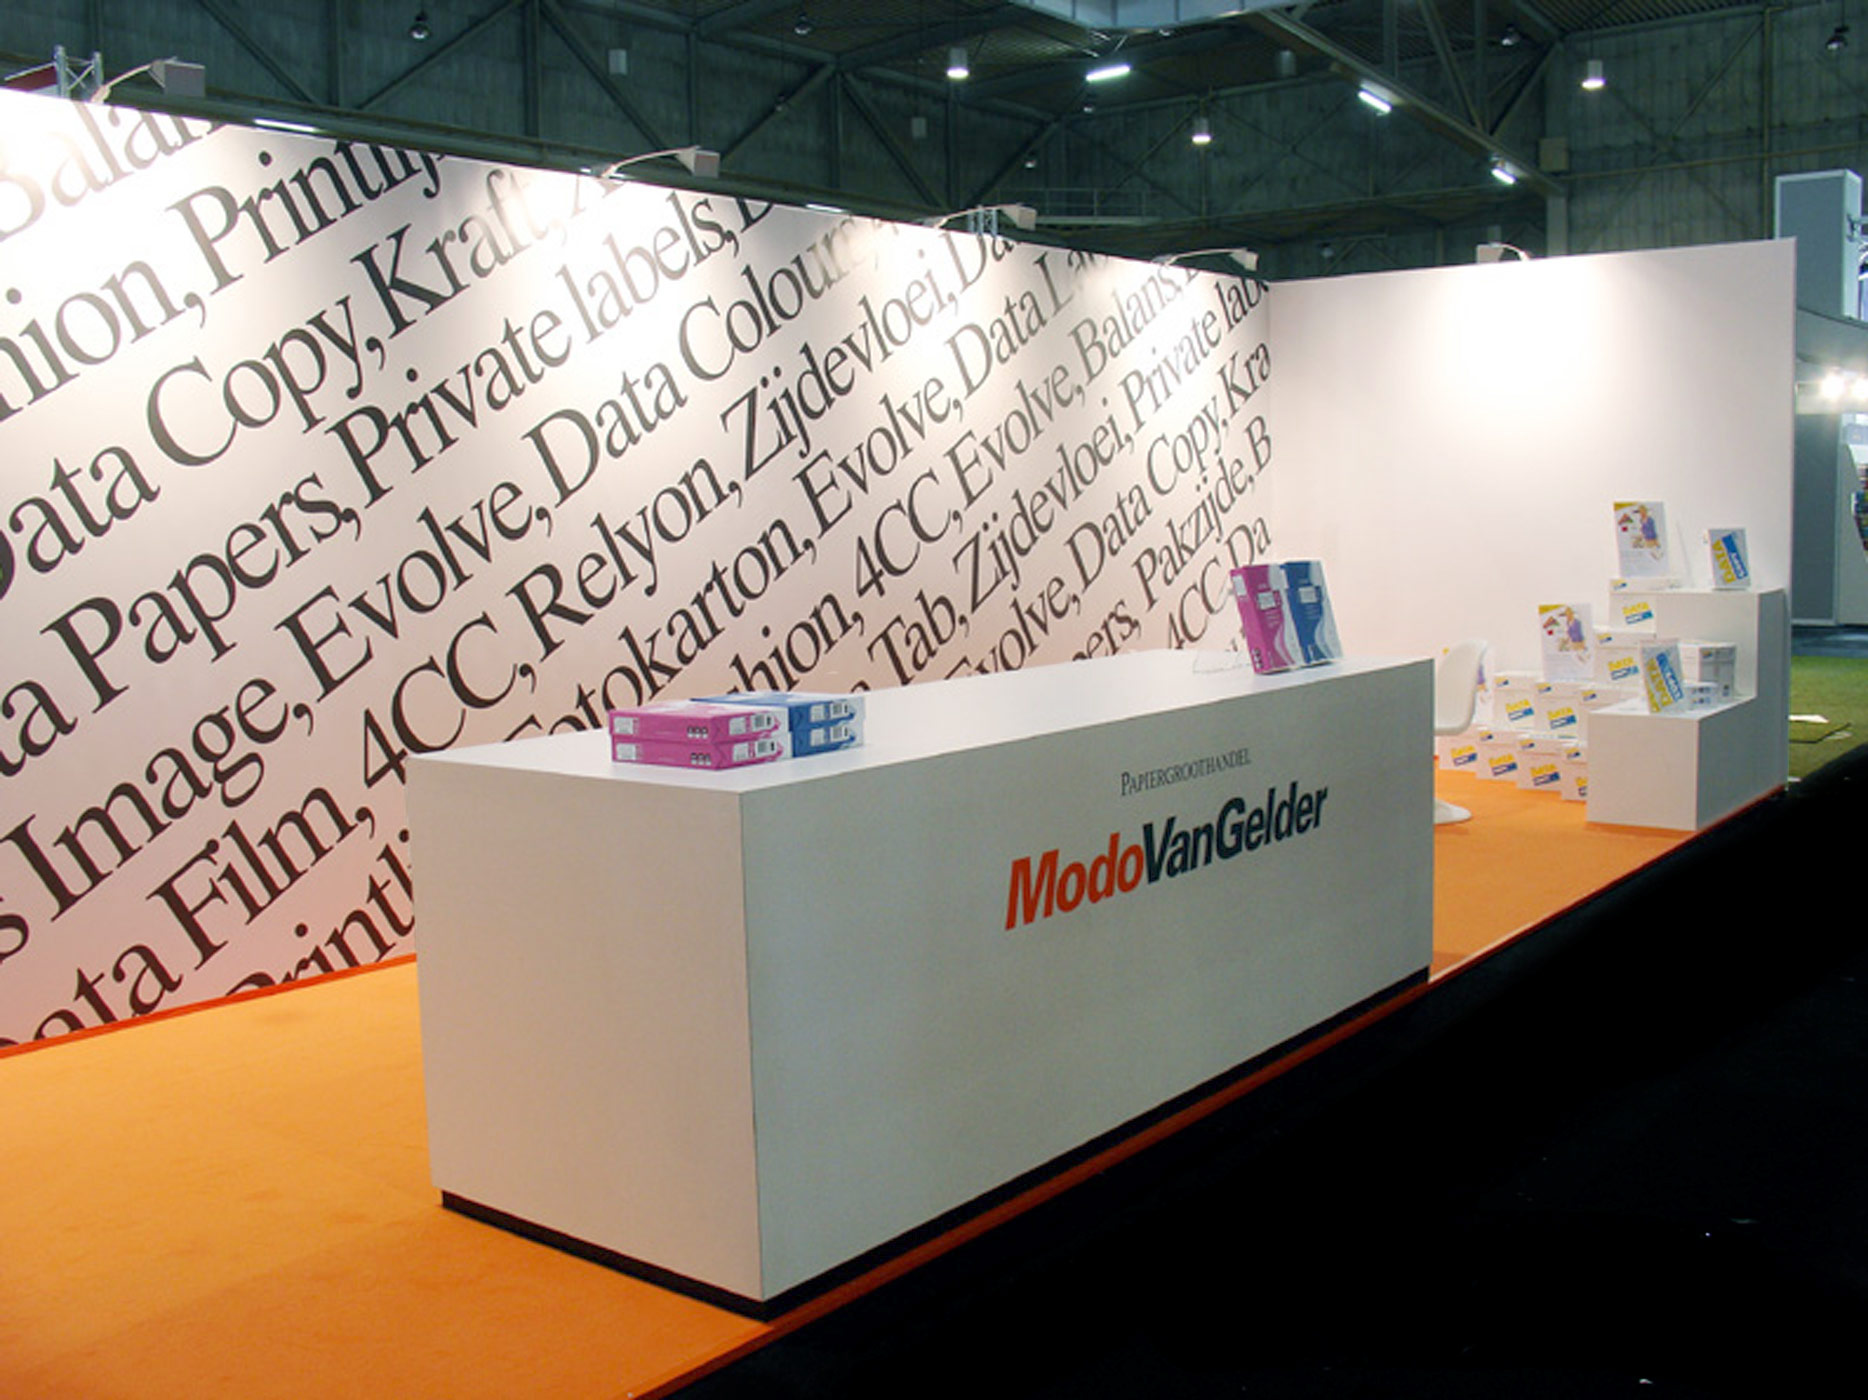 ModoVanGelder, paper, event, graphic design, stand